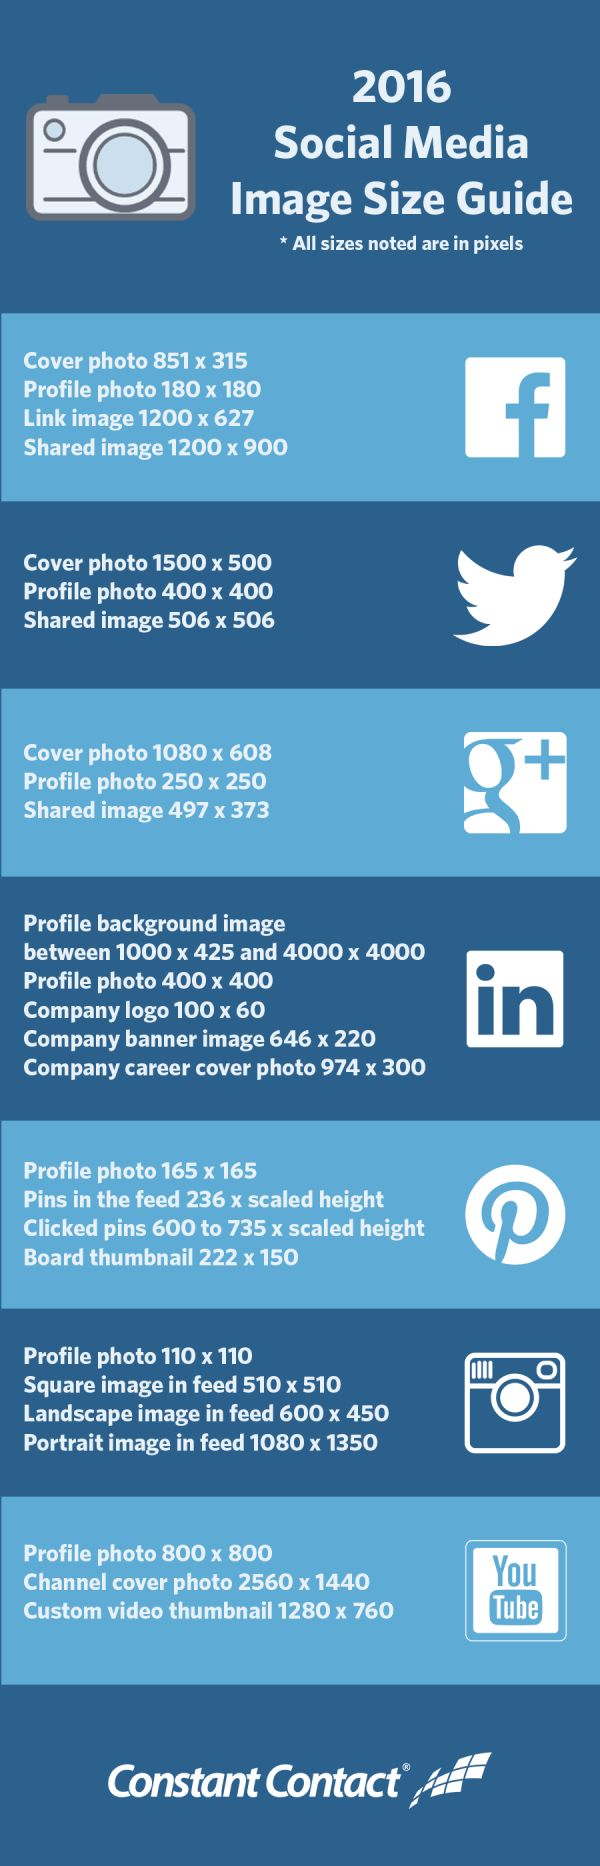 constant contact 2016 social media image guide pagemodo constant contact 2016 social media image guide pagemodo com